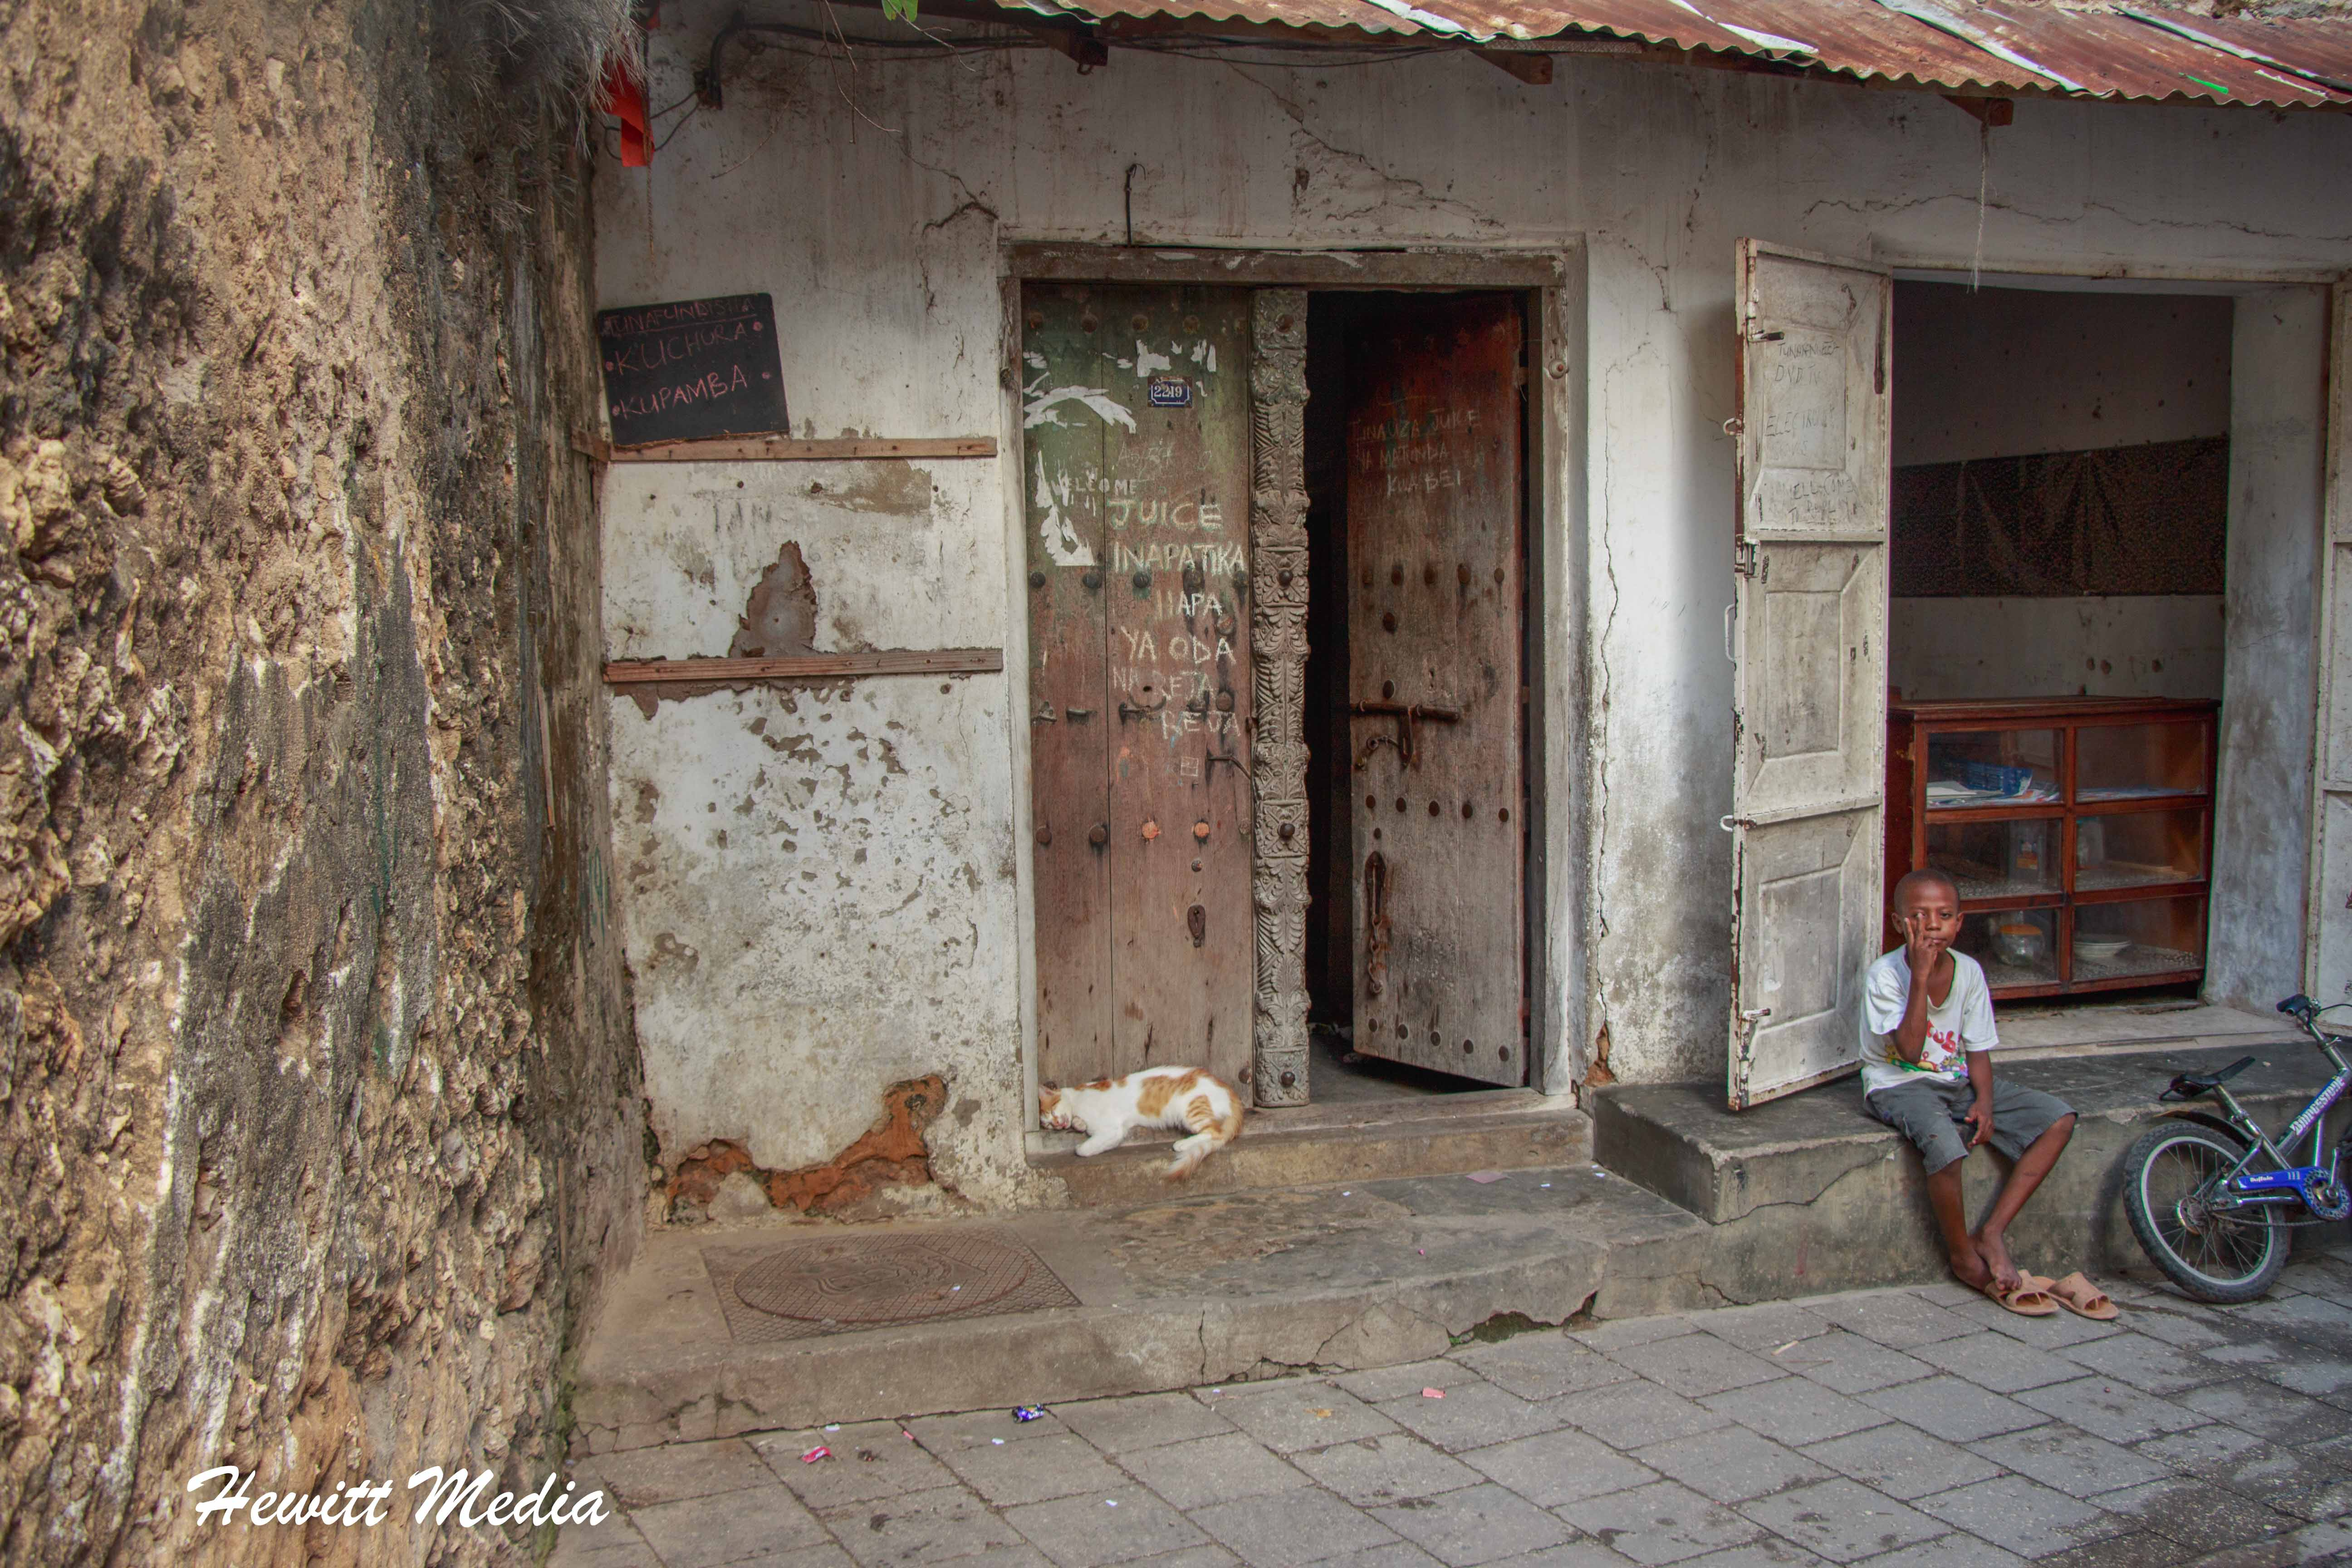 The streets of downtown Stone Town